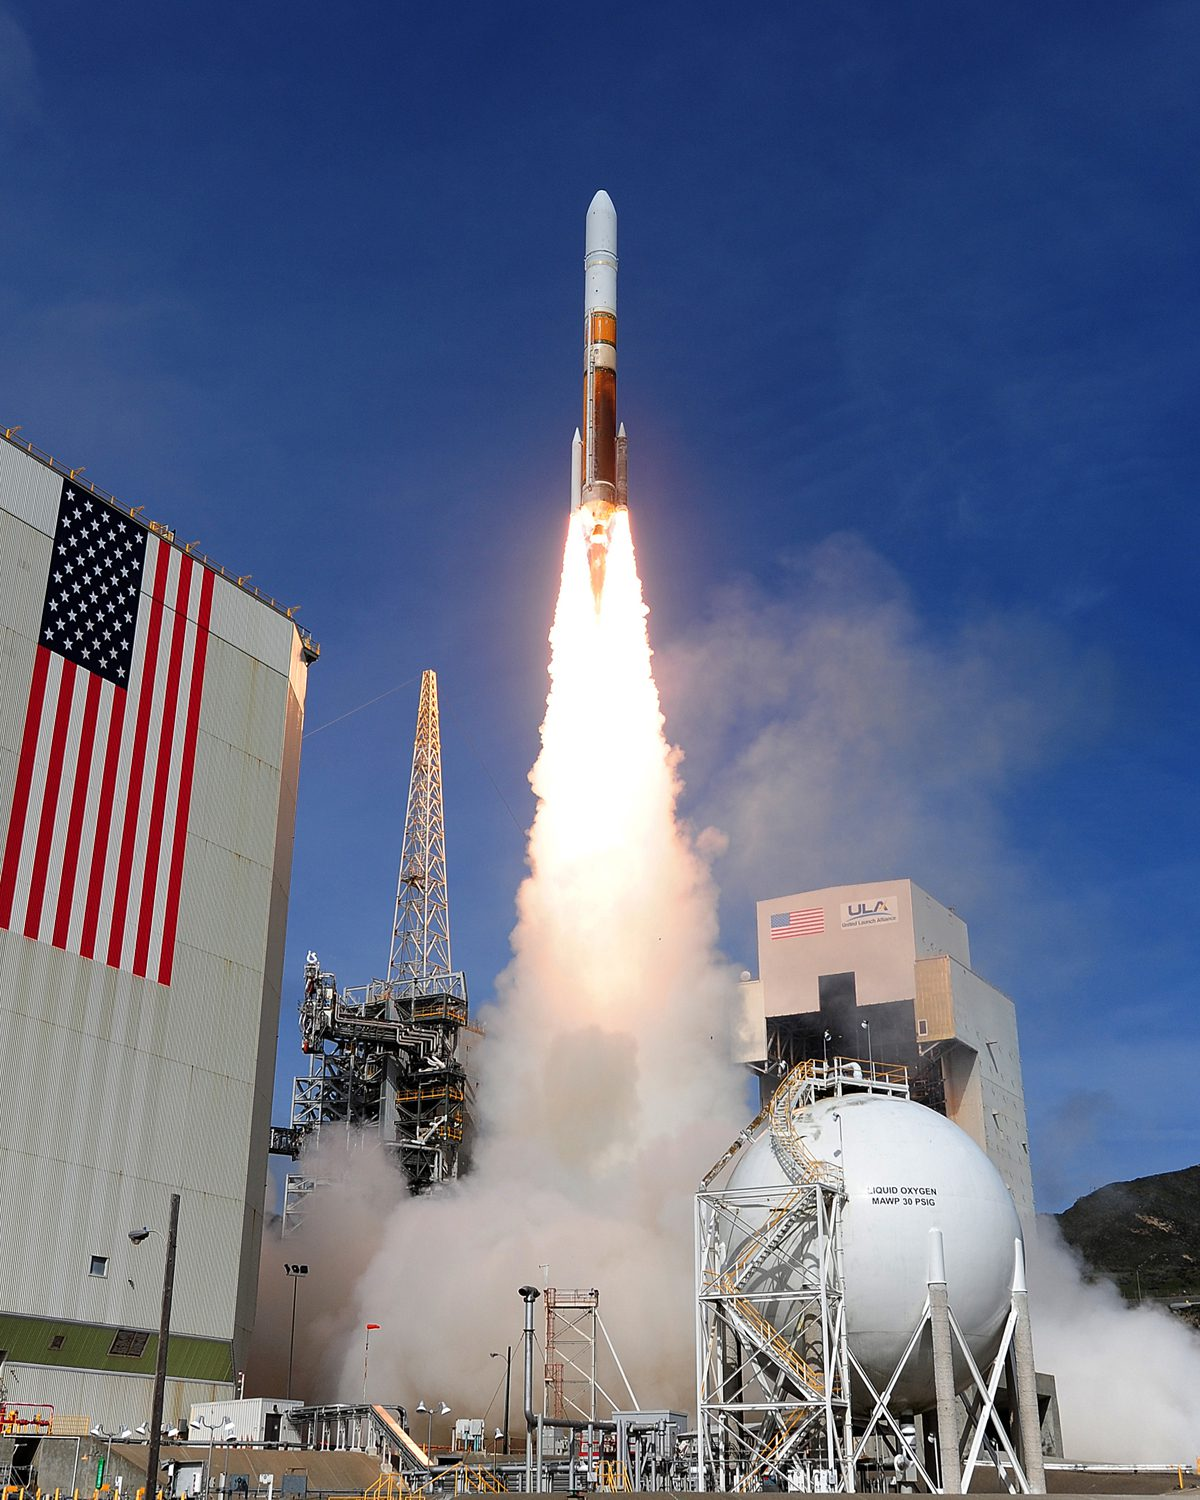 VANDENBERG AIR FORCE BASE, Calif.-- Team Vandenberg launched a United Launch Alliance Delta IV Medium+ (5,2) from Space Launch Complex-6 here at 4:12 p.m. PDT Tuesday, April 3, 2012. The launch was the Department of Defense's first-ever Delta IV Medium launch vehicle configured with a 5-meter payload fairing and two solid rocket motors. (U.S. Air Force photo/Rodney Jones)